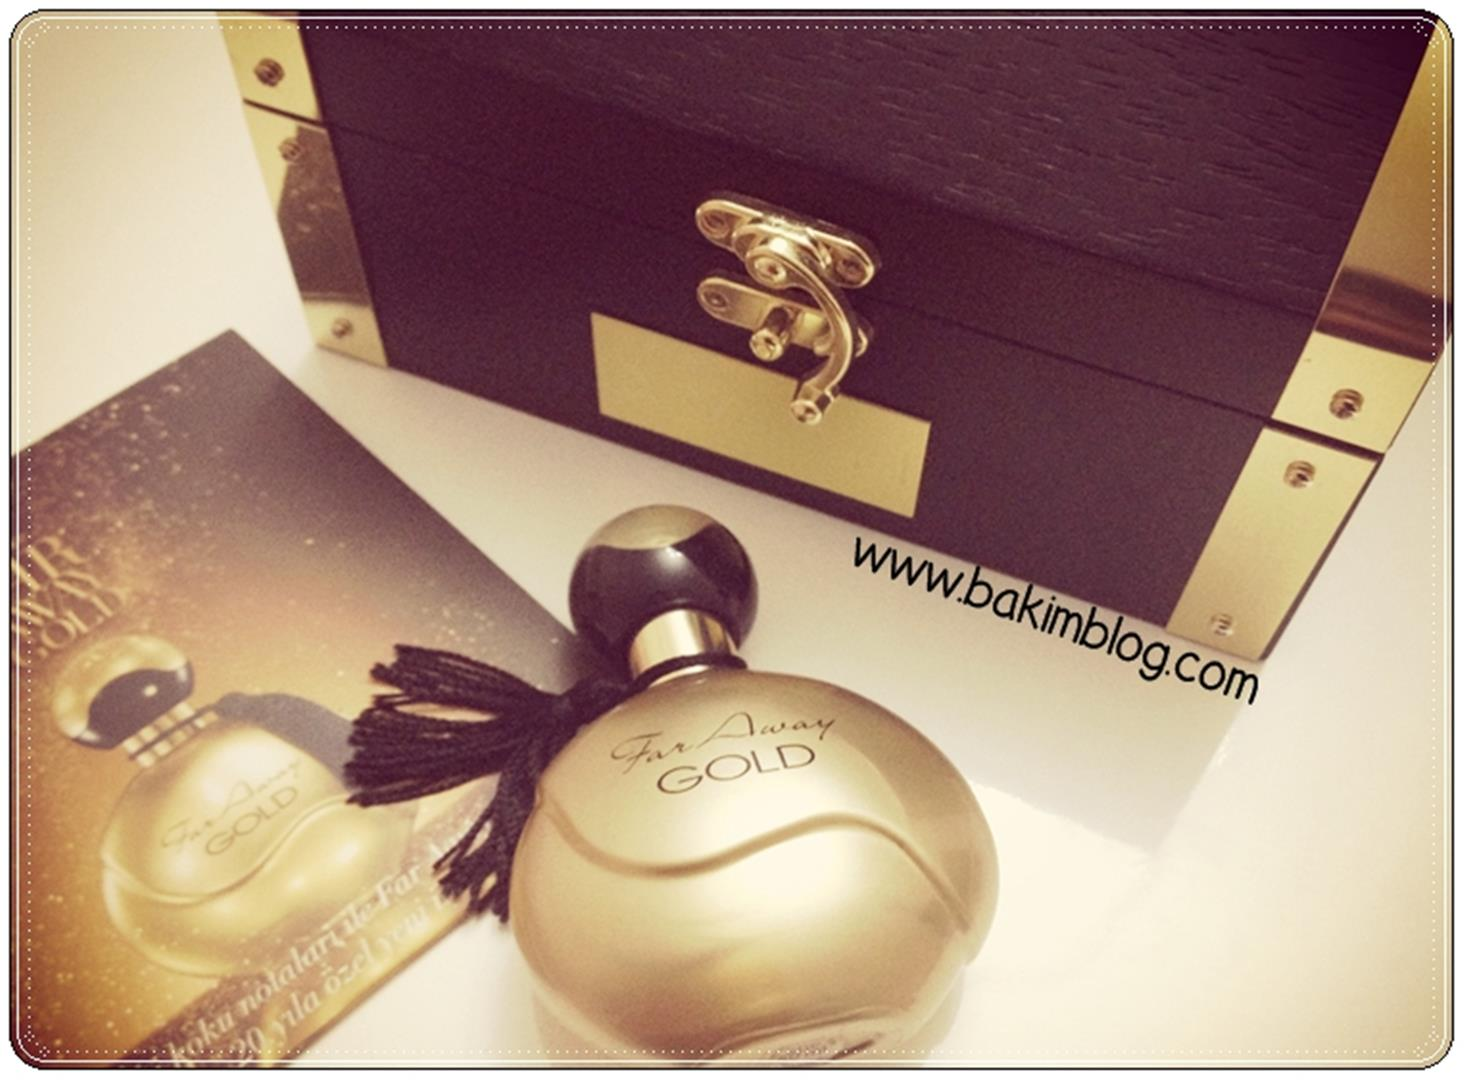 en iyi avon parfumu far away gold